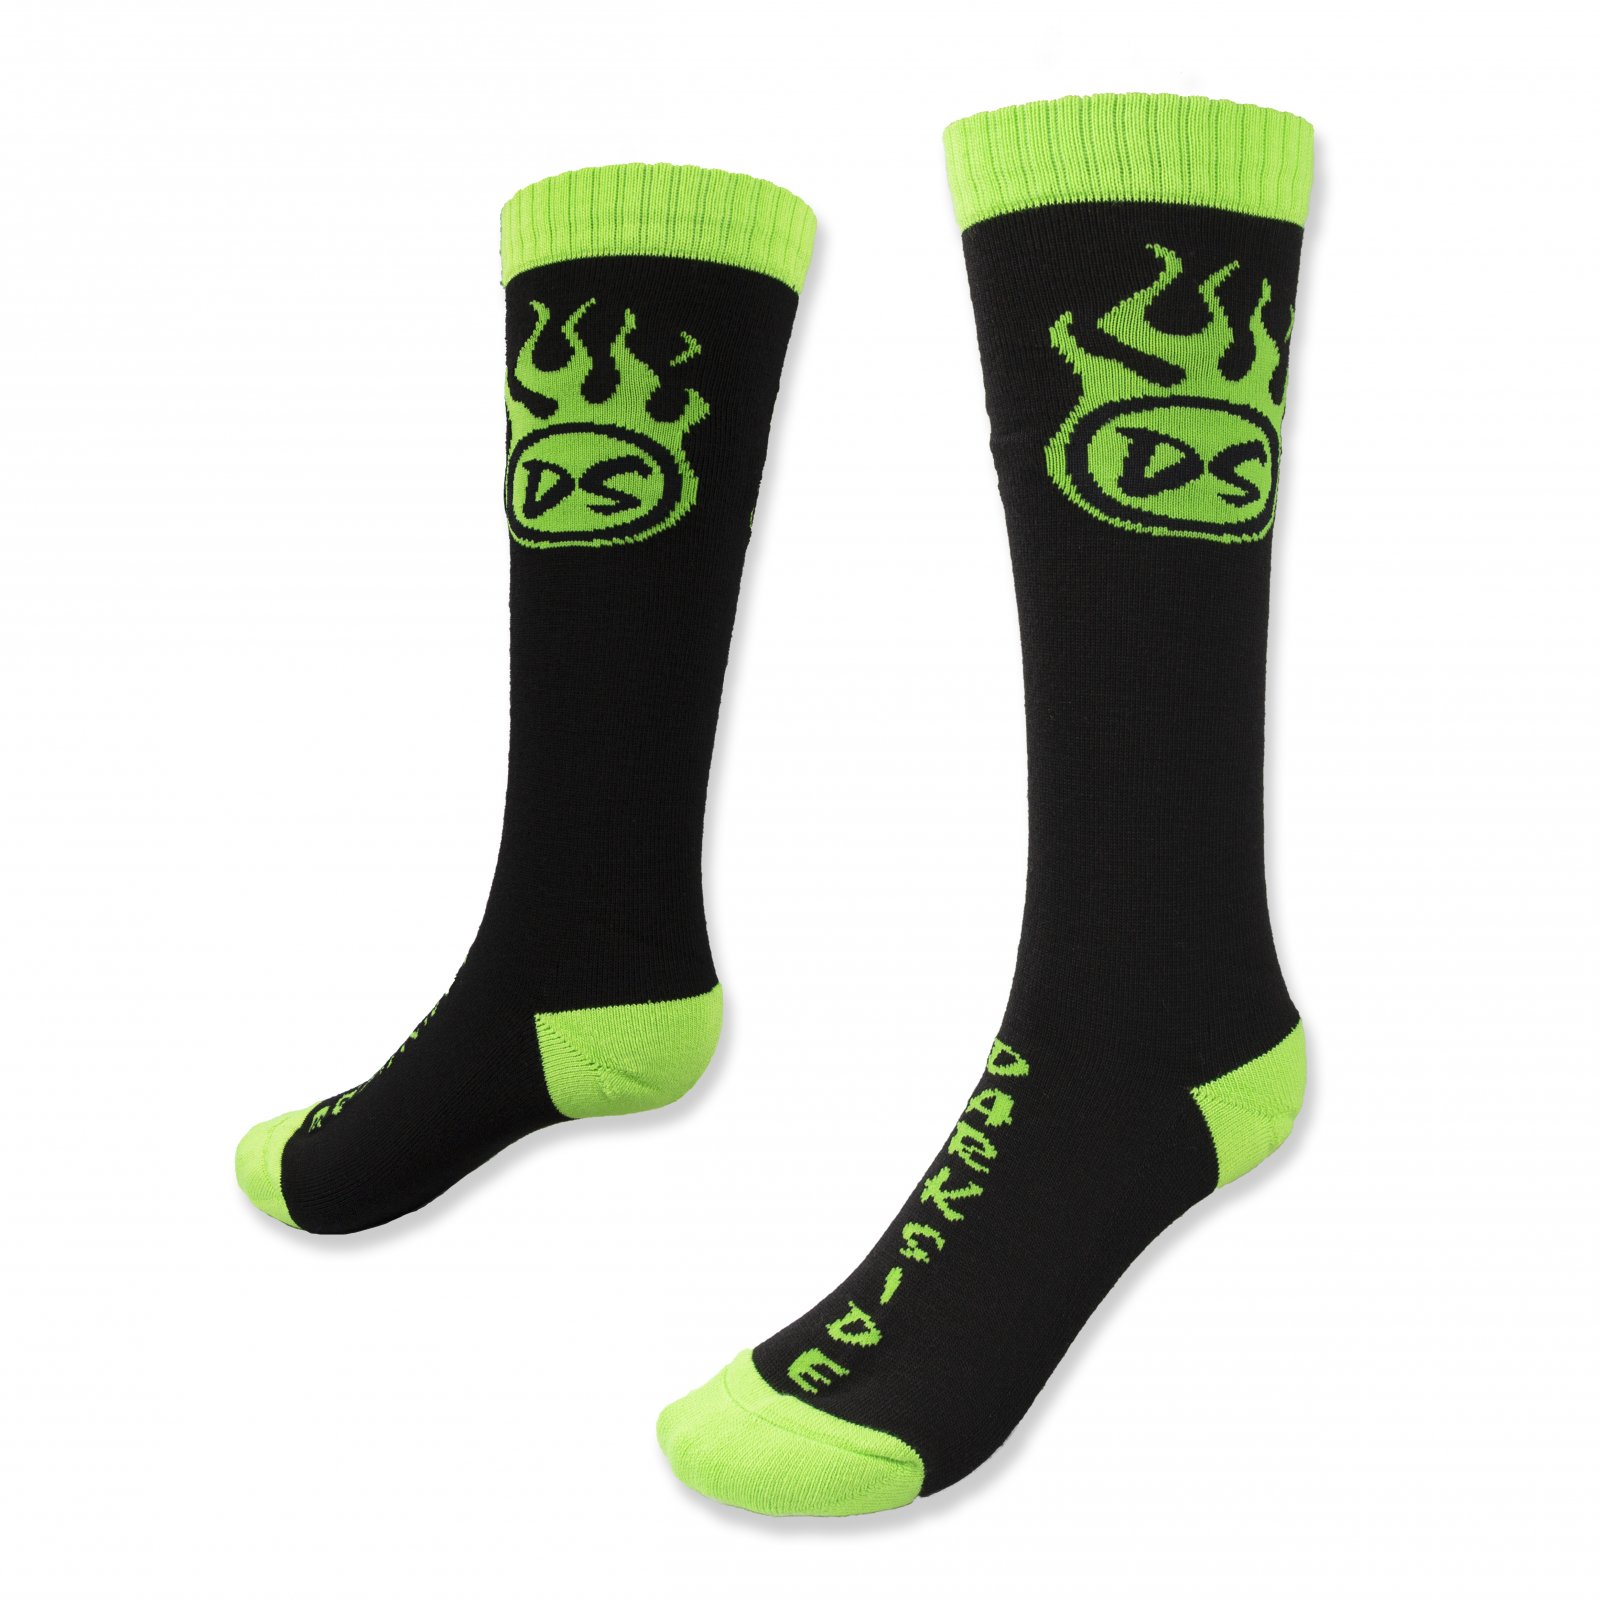 Darkside Sig Socks Flame Socks